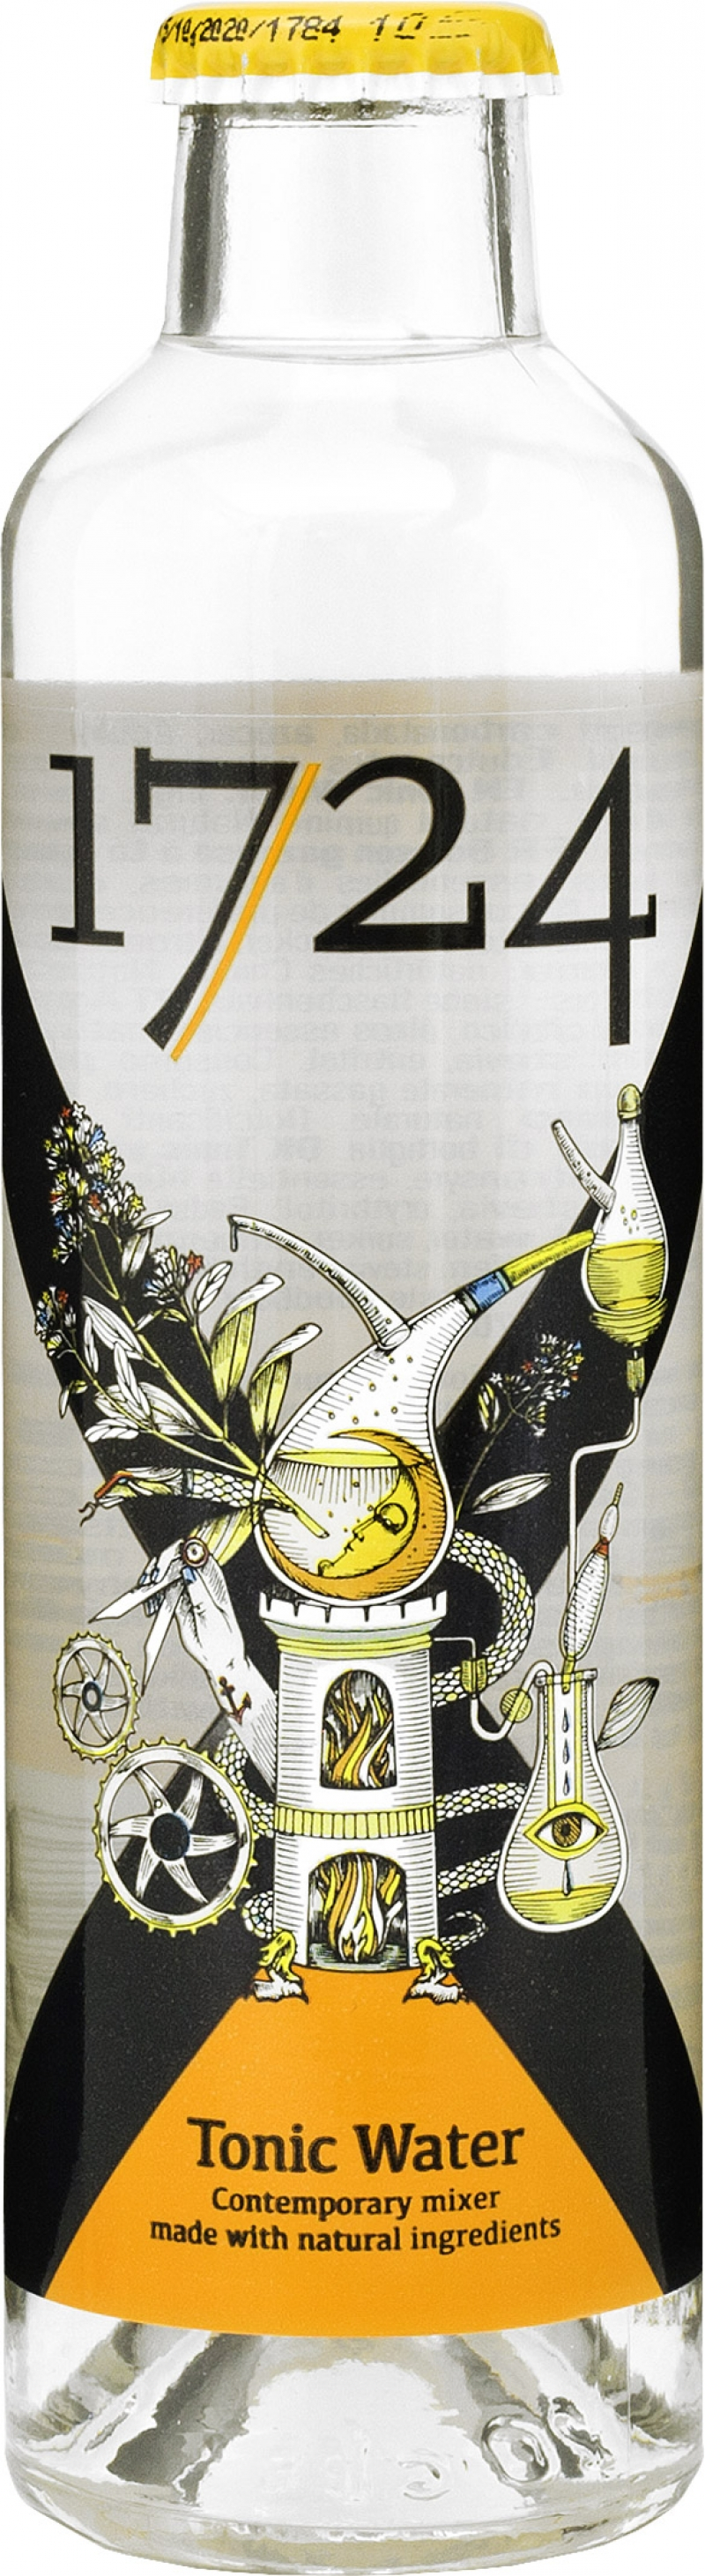 Image of 1724 Tonic Water